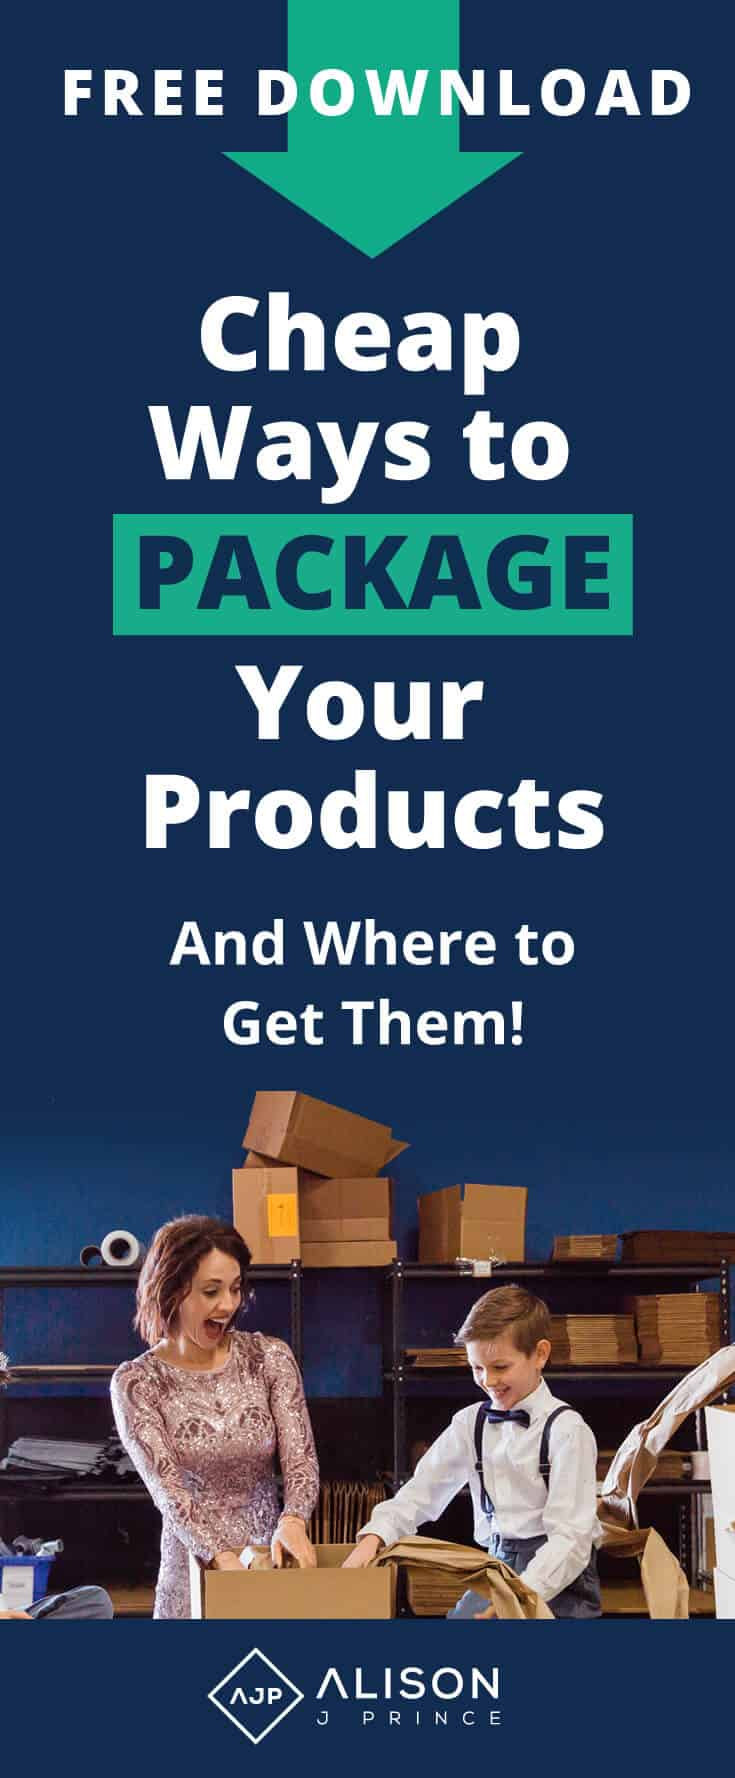 How to package e-commerce products - Alison Prince